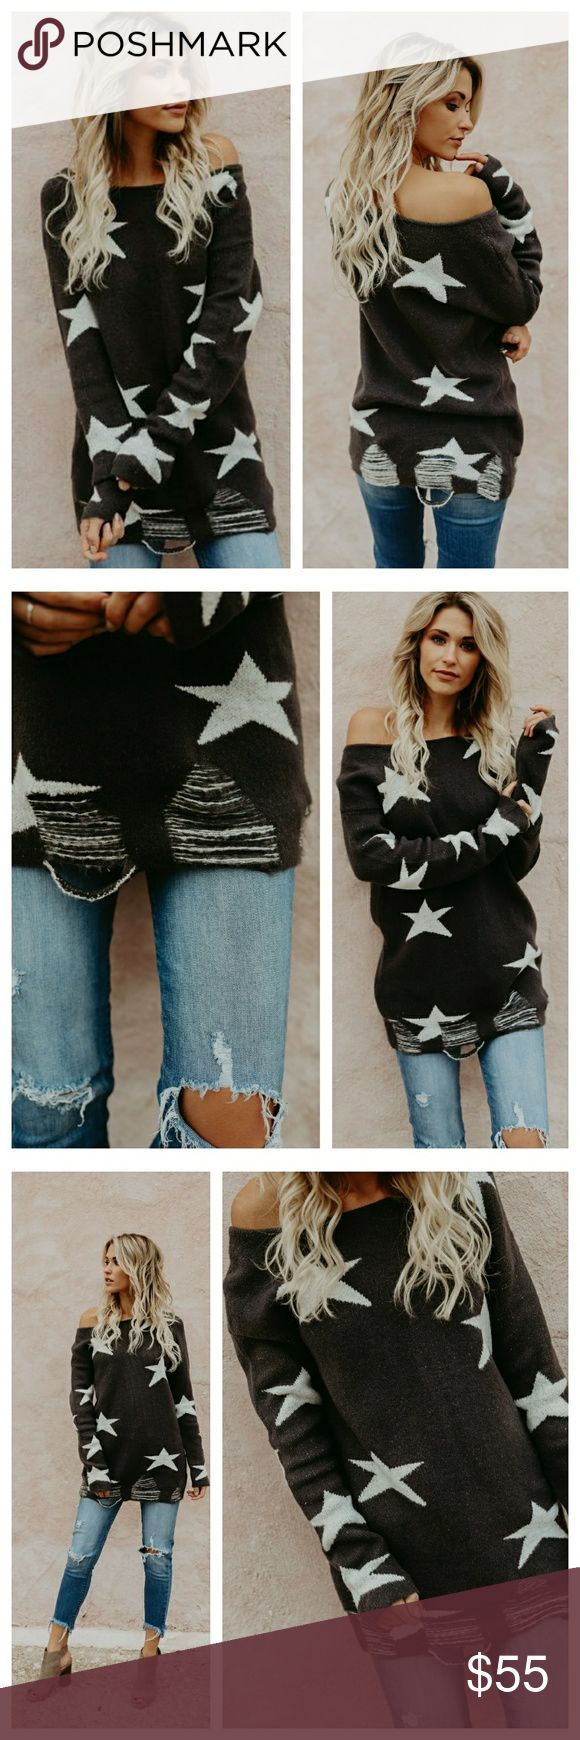 Preorder ️ charcoal distressed star sweater New boho style charcoal distressed hemline sweater in charcoal featuring ivory stars  65% acrylic 25% nylon 10% polyester  *this item ships in 3-7 business days Sweaters